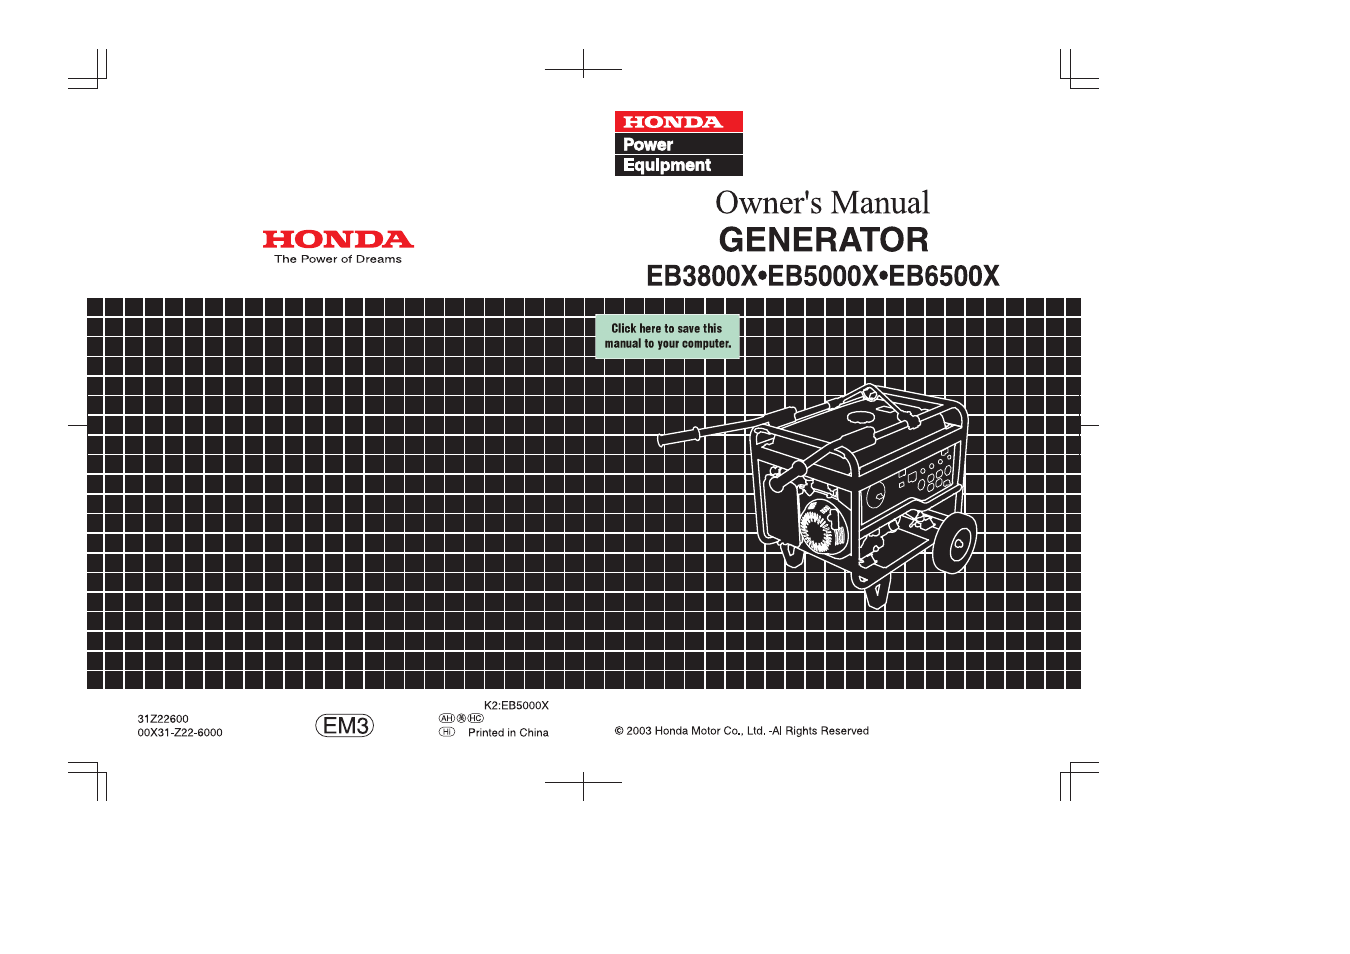 hight resolution of honda eb5000x user manual 71 pages rh manualsdir com honda eb5000 generator honda eb5000 service manual